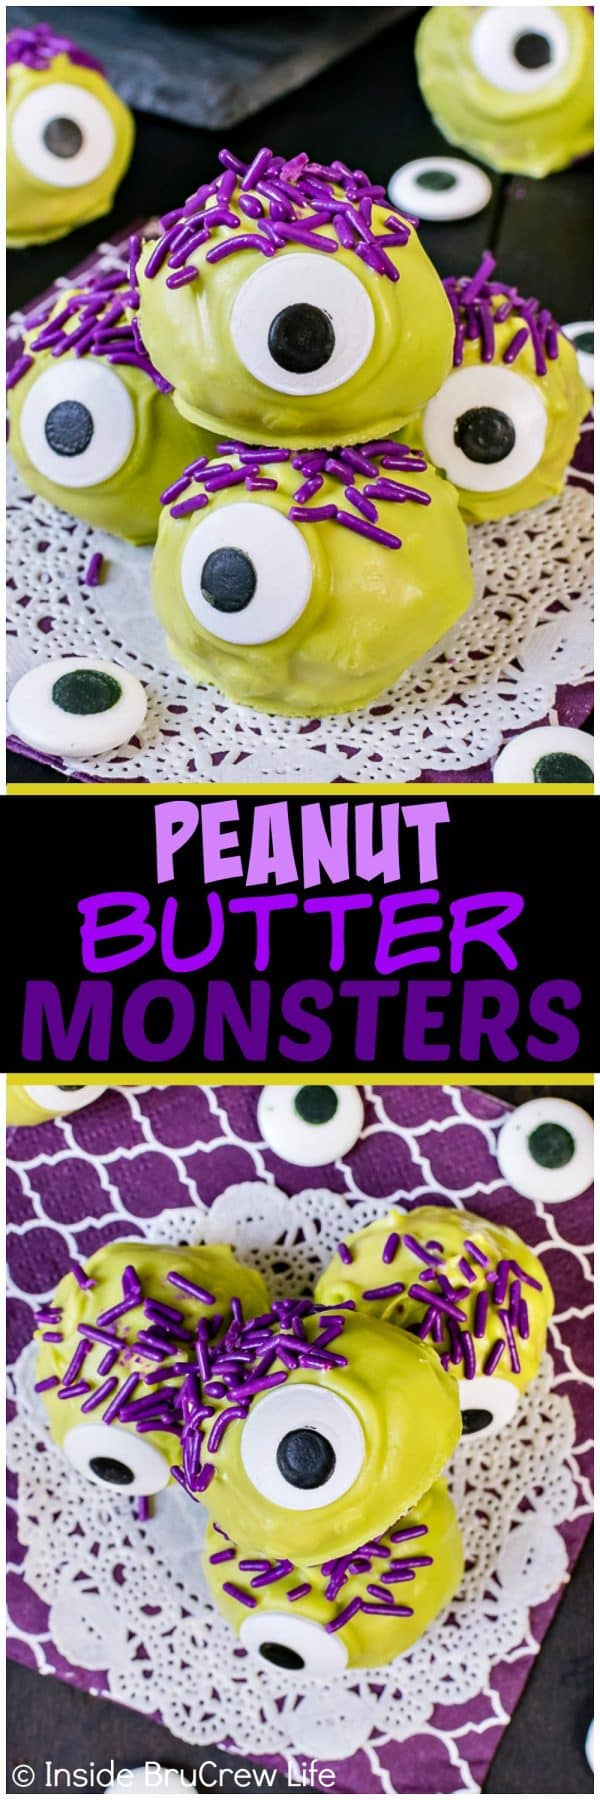 Peanut Butter Monsters - big candy eyes, green chocolate, and purple sprinkles turn these candies into a fun treat. Easy no bake recipe for halloween parties!